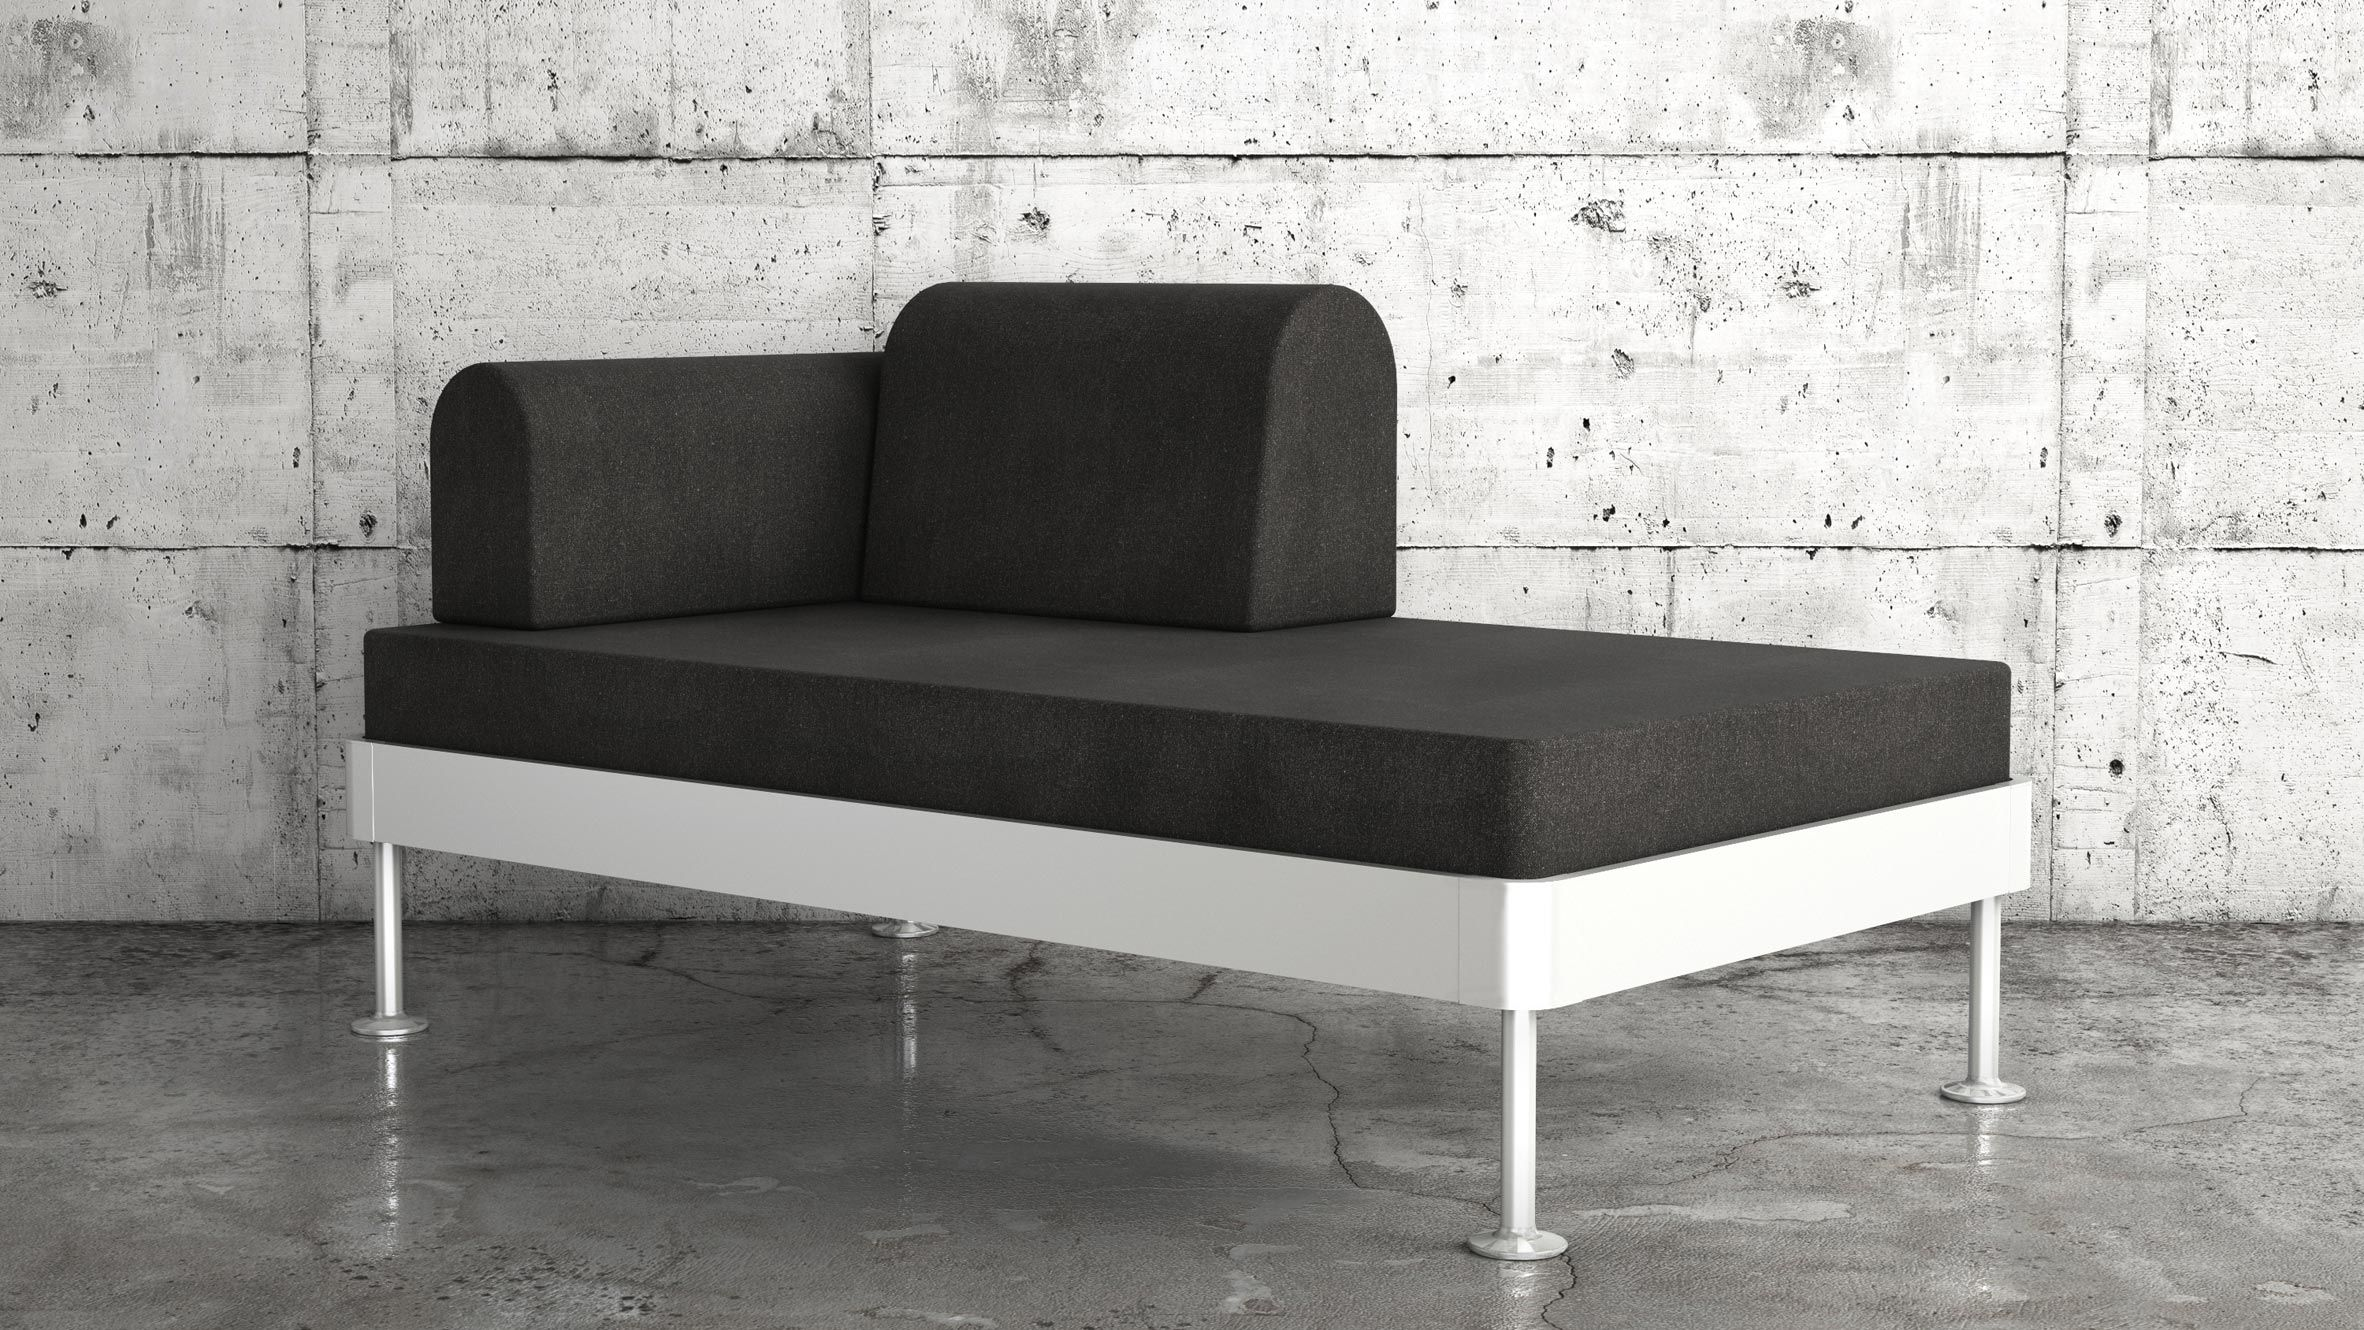 Tom Dixon S First Hack For Ikea S Open Source Delaktig Sofa Is Here It S Seriously Ott Modular Sofa Bed Ikea Sofa Bed Modular Bed